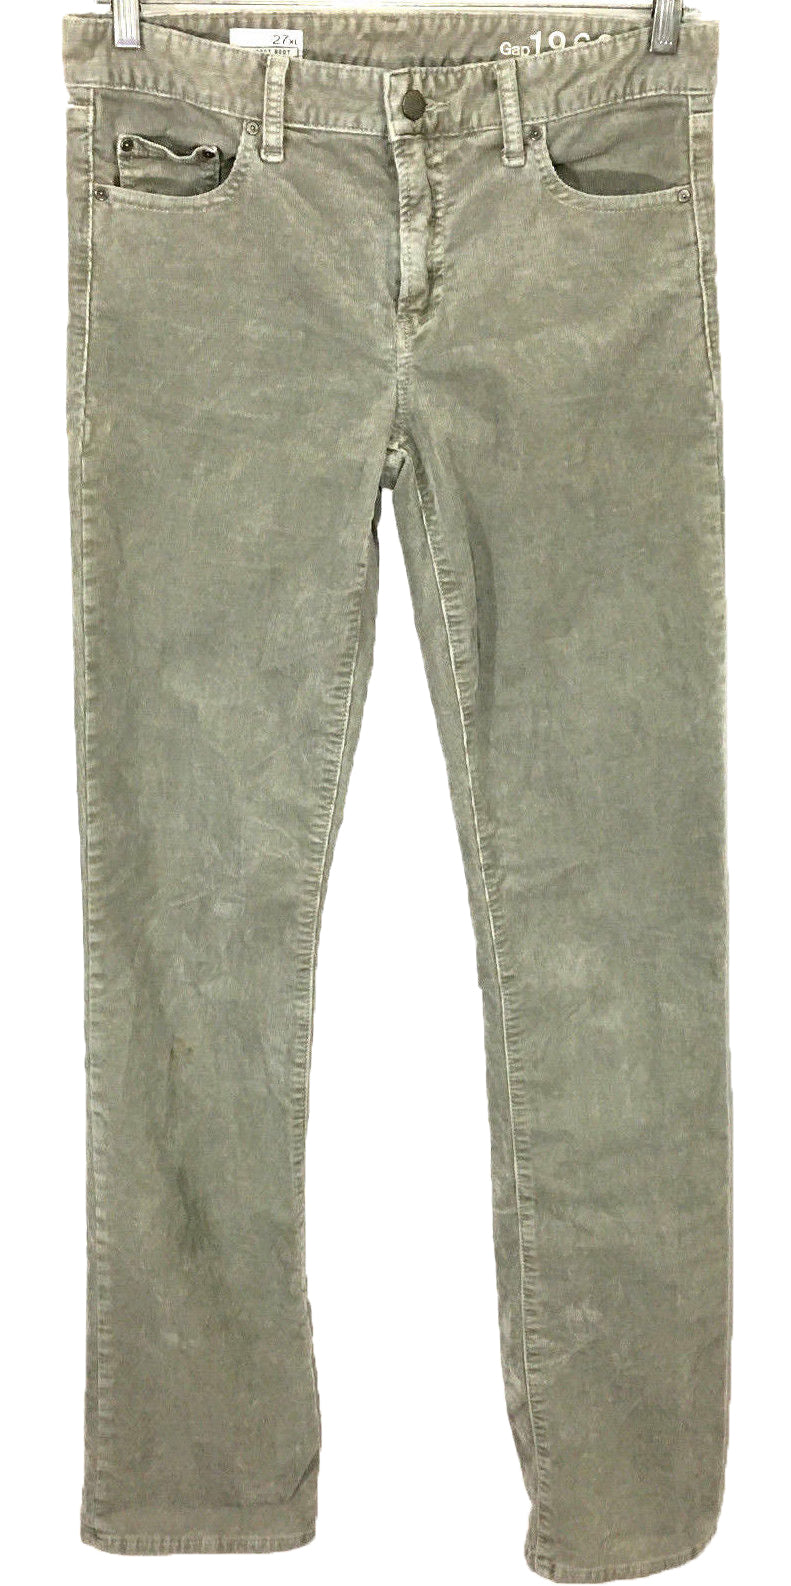 Gap Perfect Boot 1969 Corduroy Jeans Lt Gravel Gray Pants Womens 27 XL 30 x 34.5 - Preowned - FunkyCrap Boutique